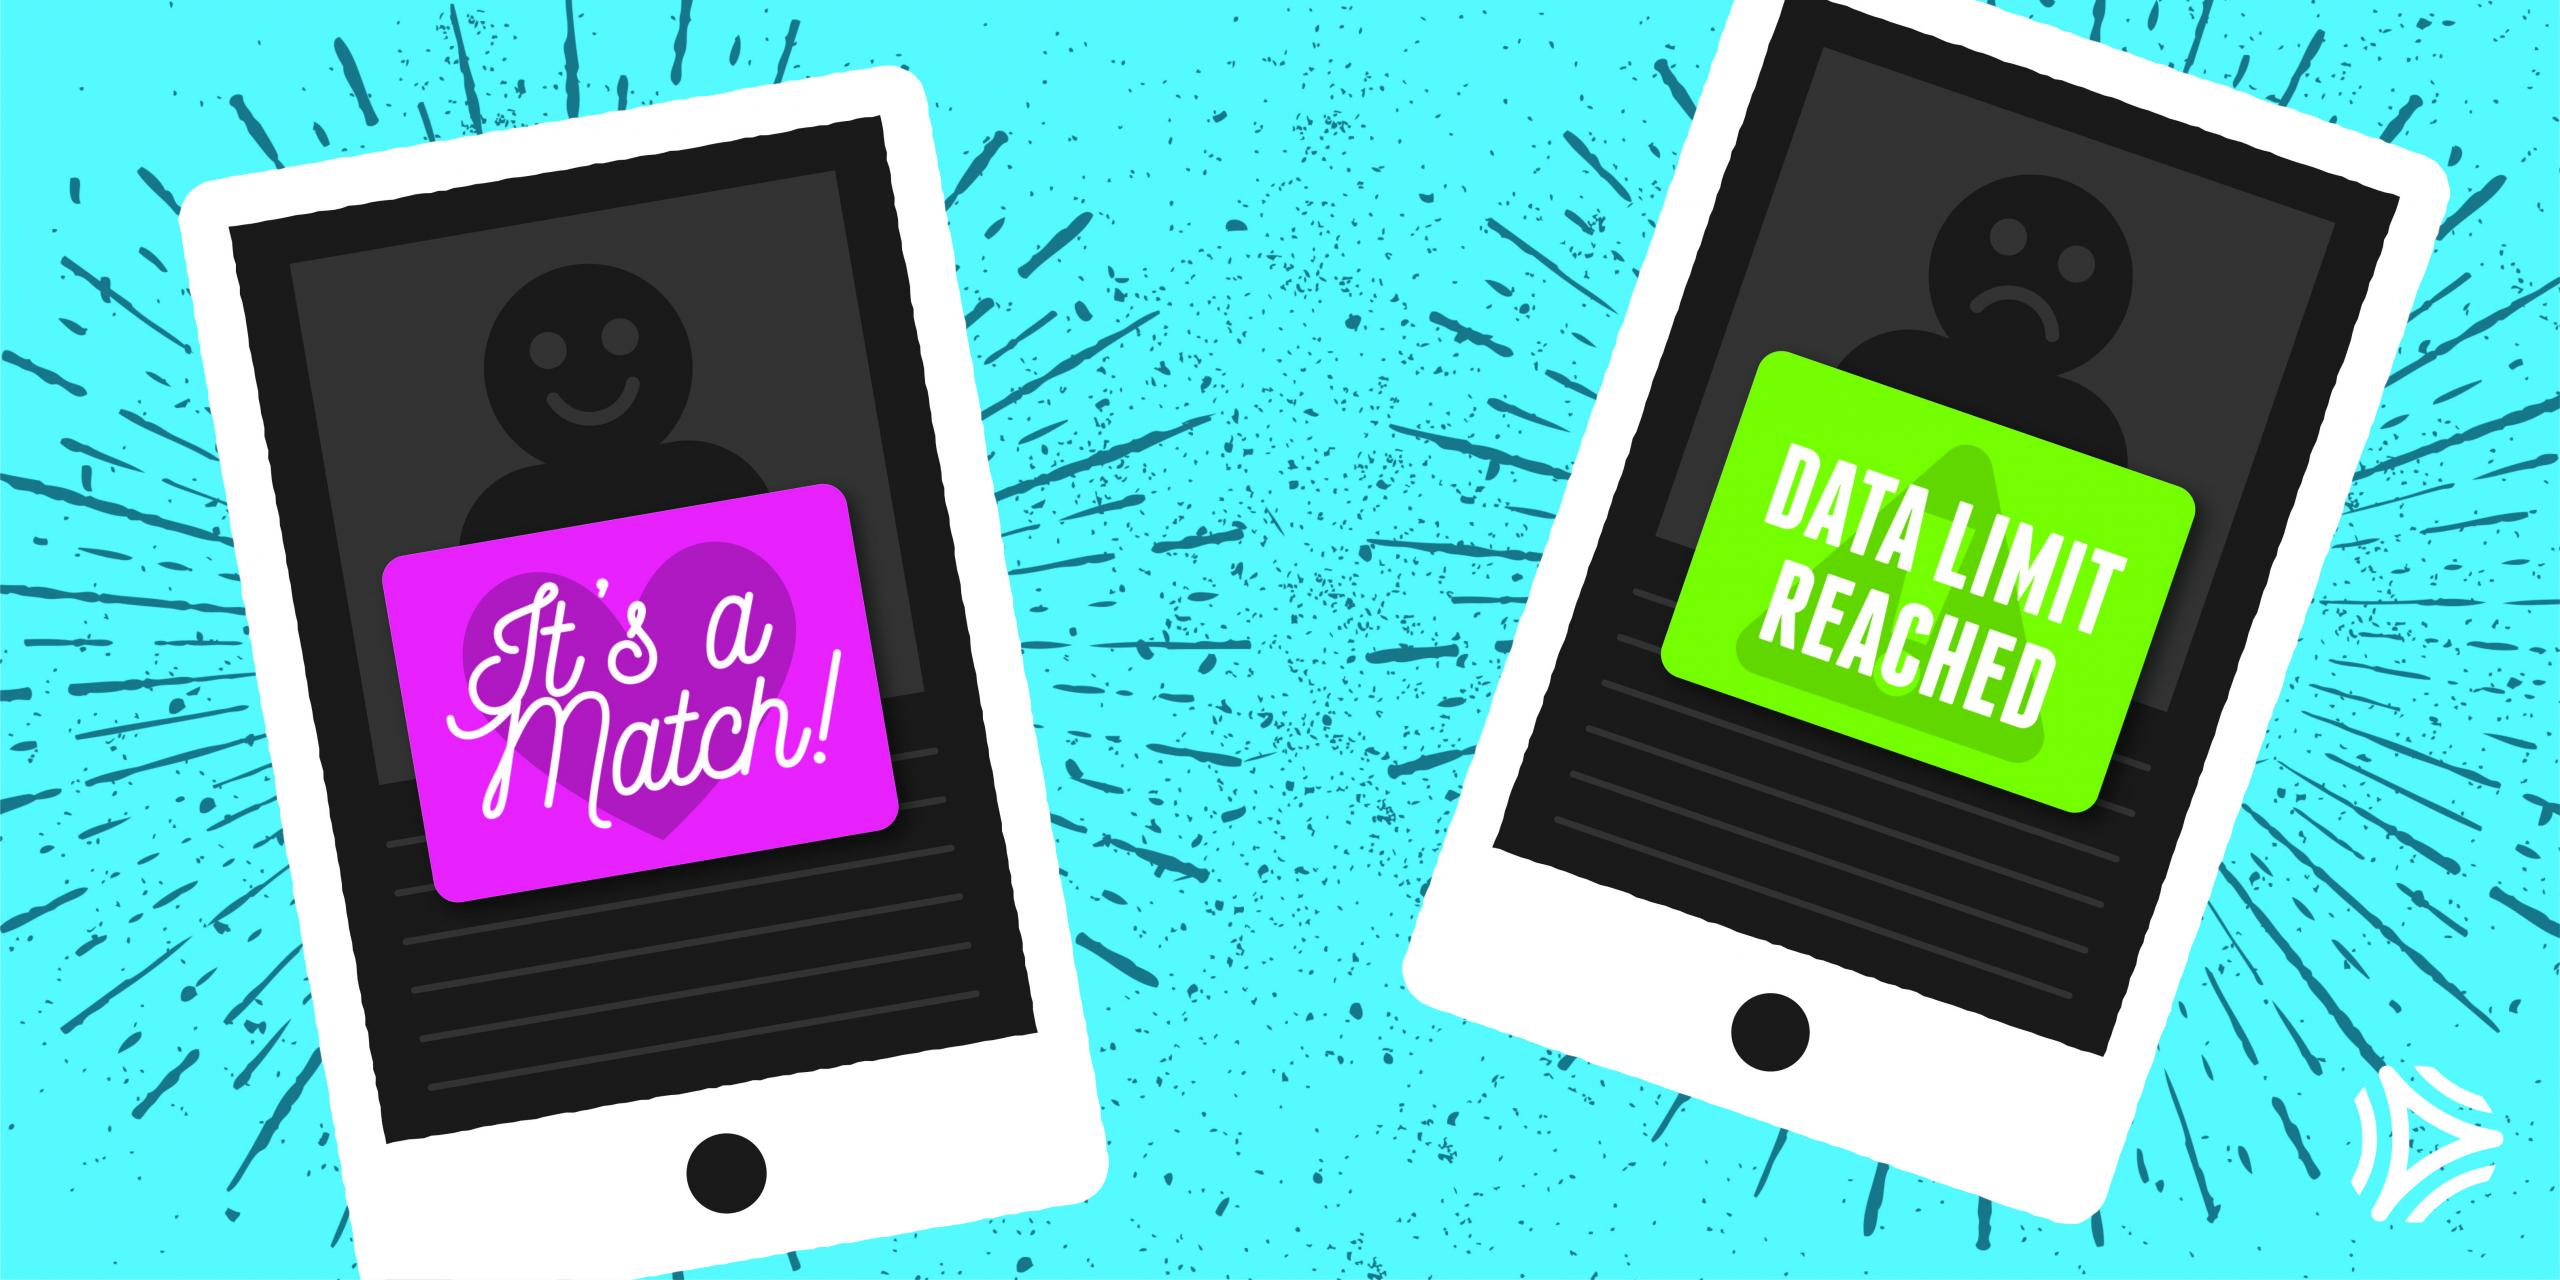 Dating app hacks to save battery and data - Asurion